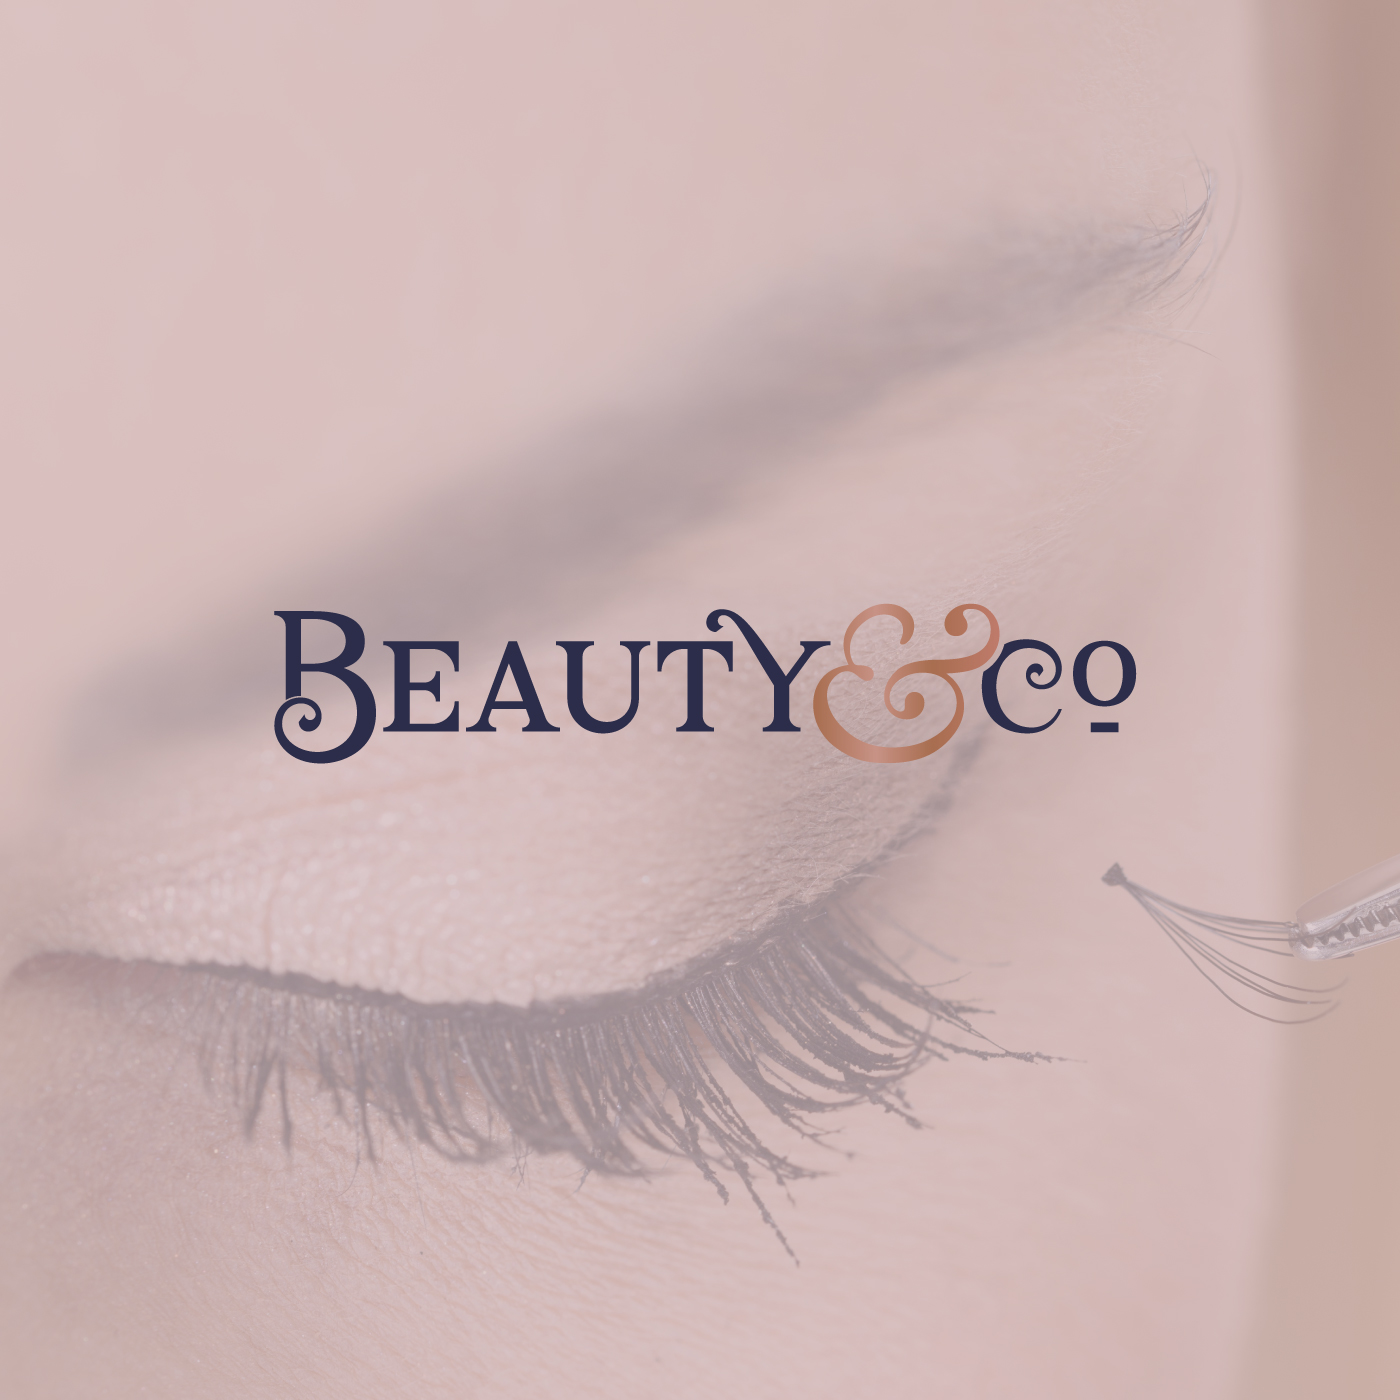 Beauty & Co